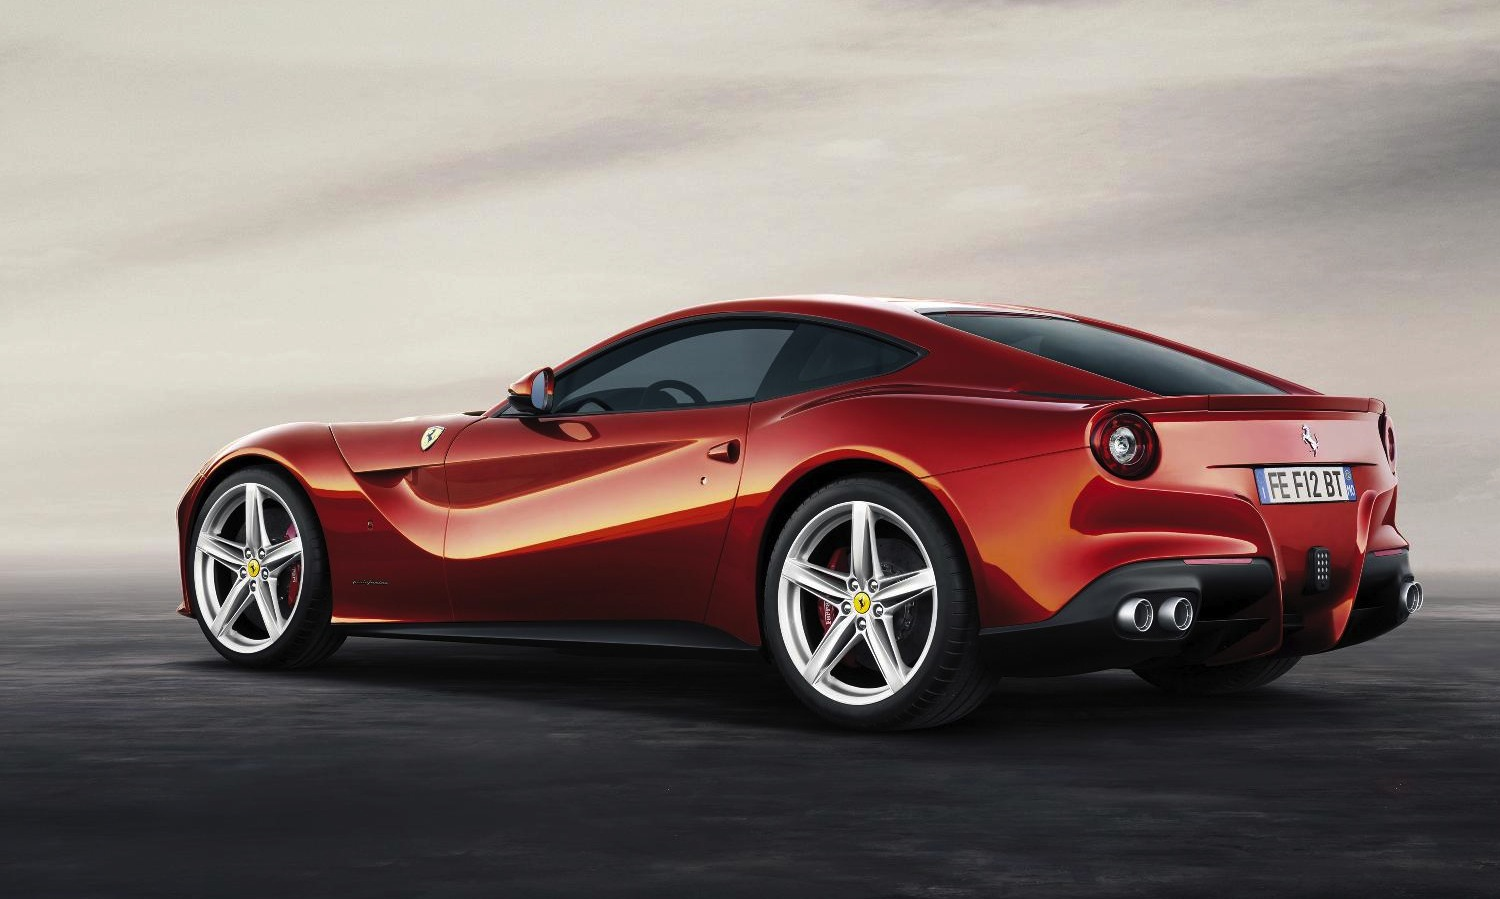 Special Ferrari F12 being made for US market 60th anniversary